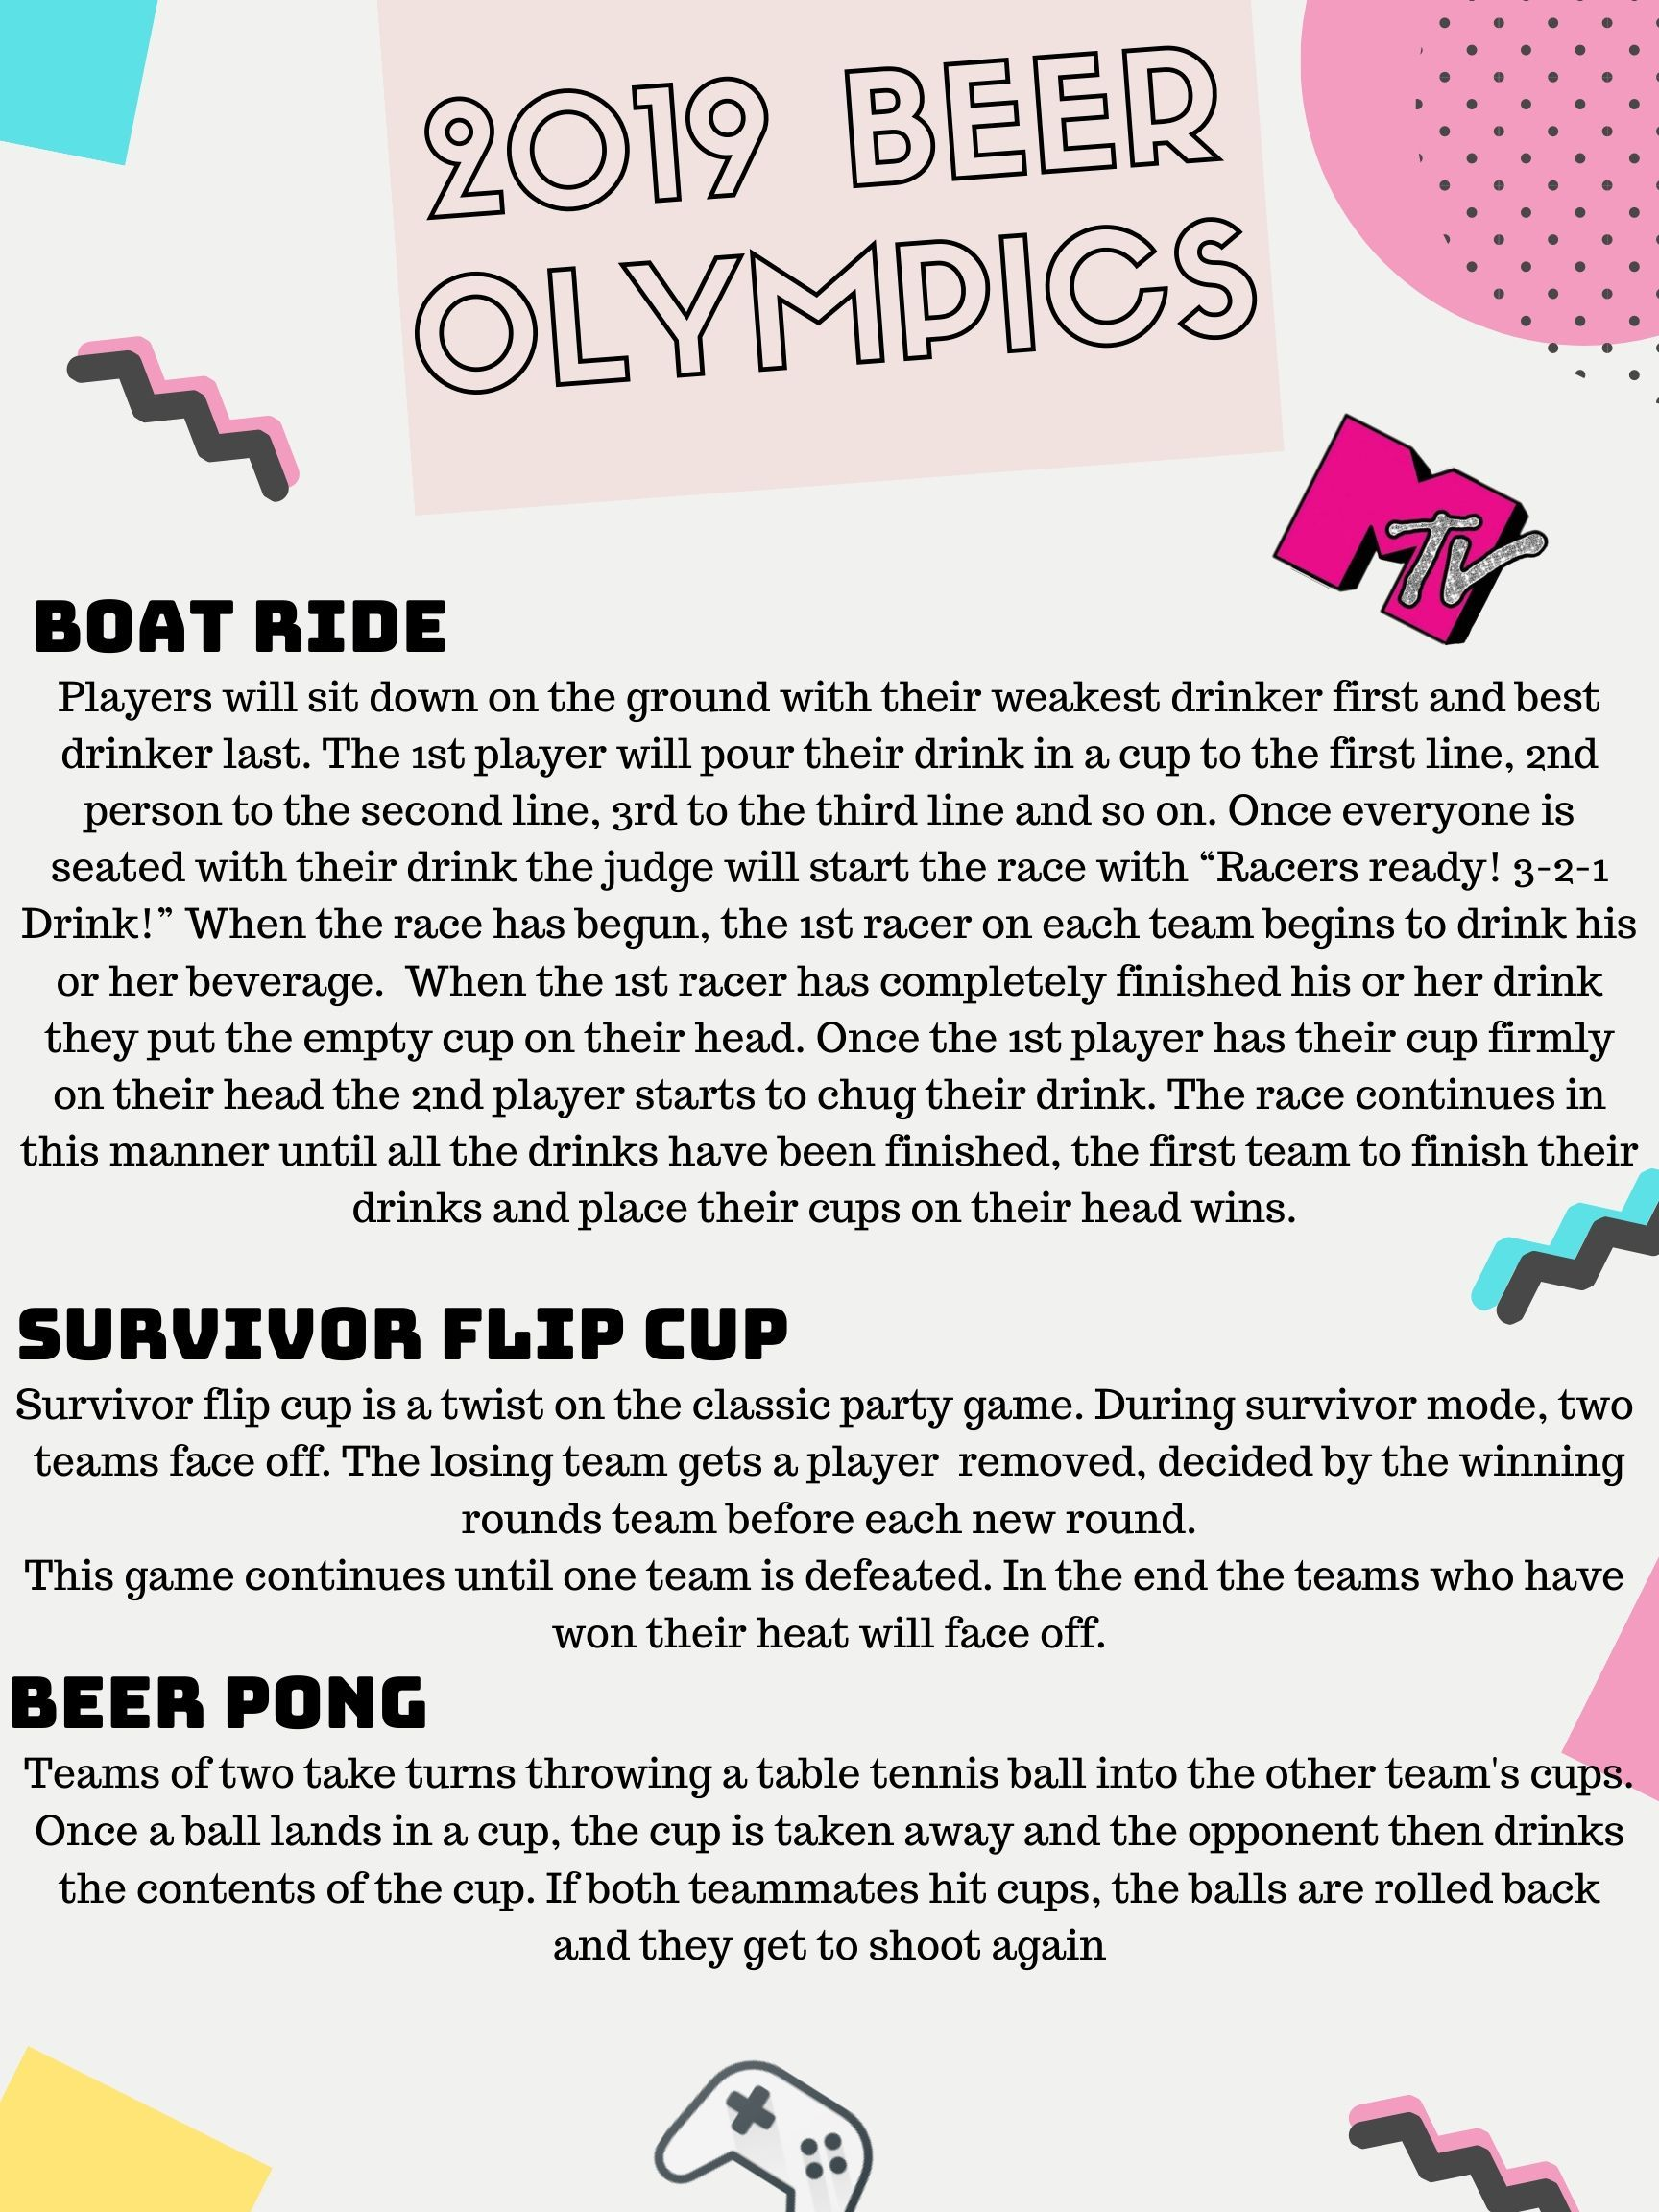 Funny Countries For Beer Olympics : funny, countries, olympics, Olympics, Poster, Games, Olympic,, Party,